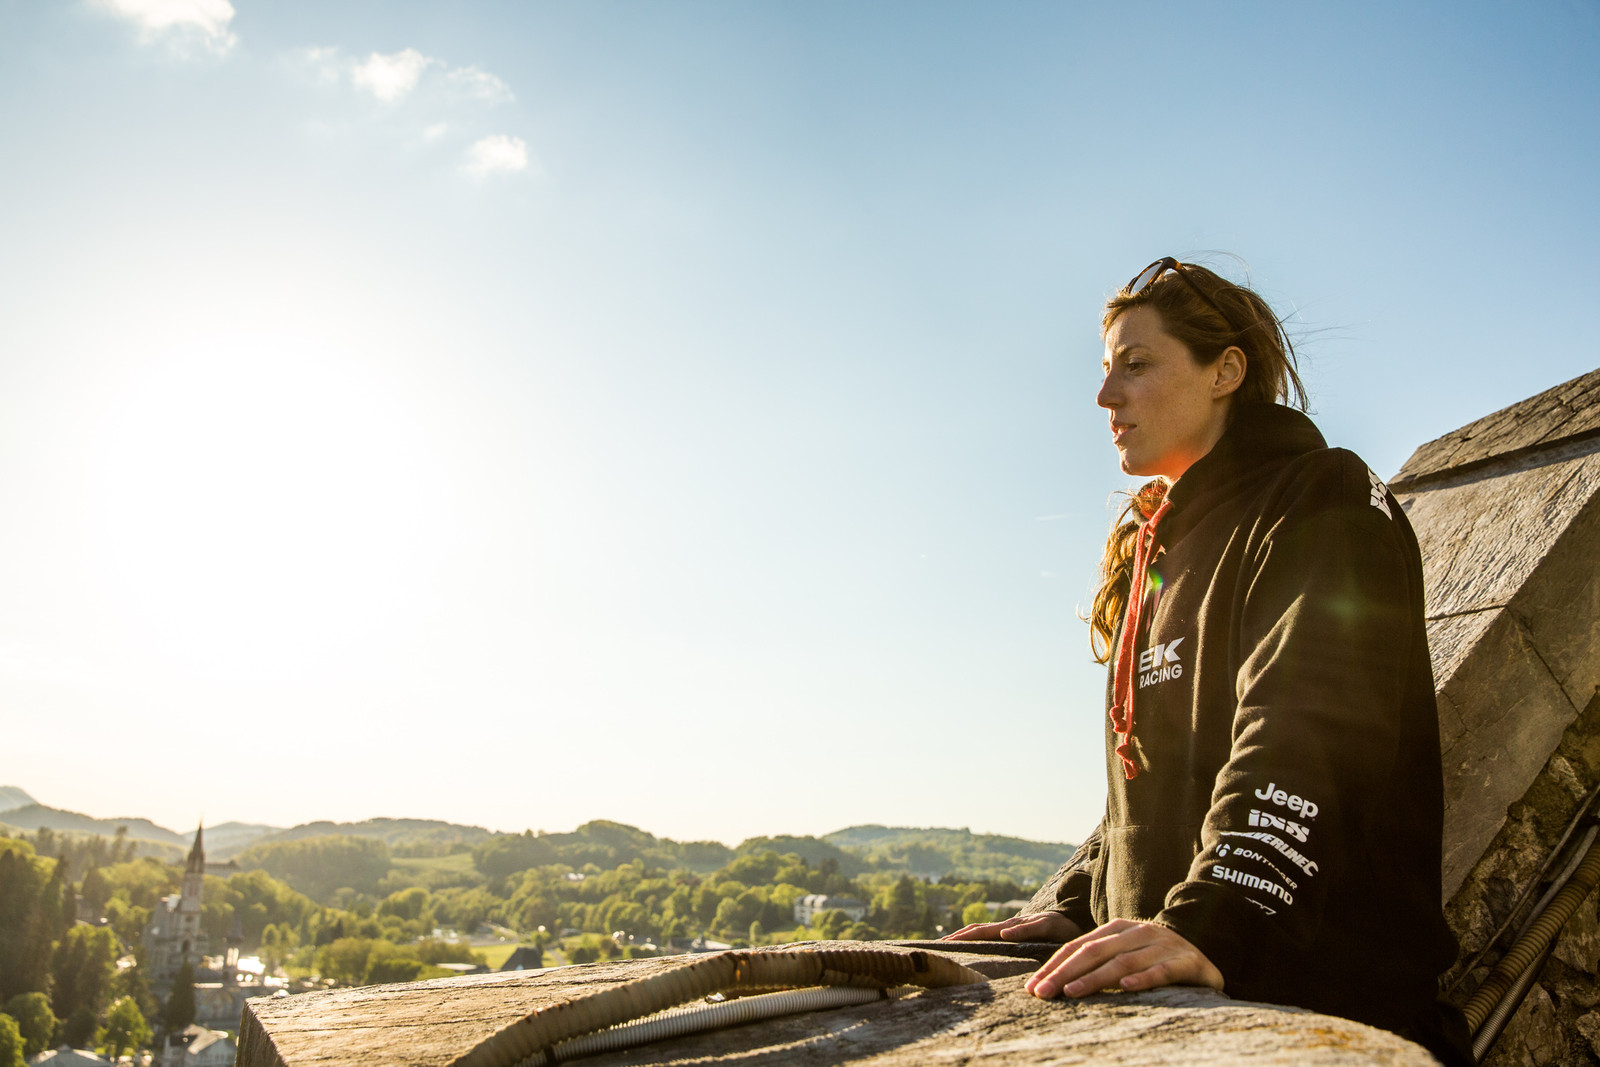 Sunny afternoon and quiet thoughts from atop a castle with Rachel Atherton.